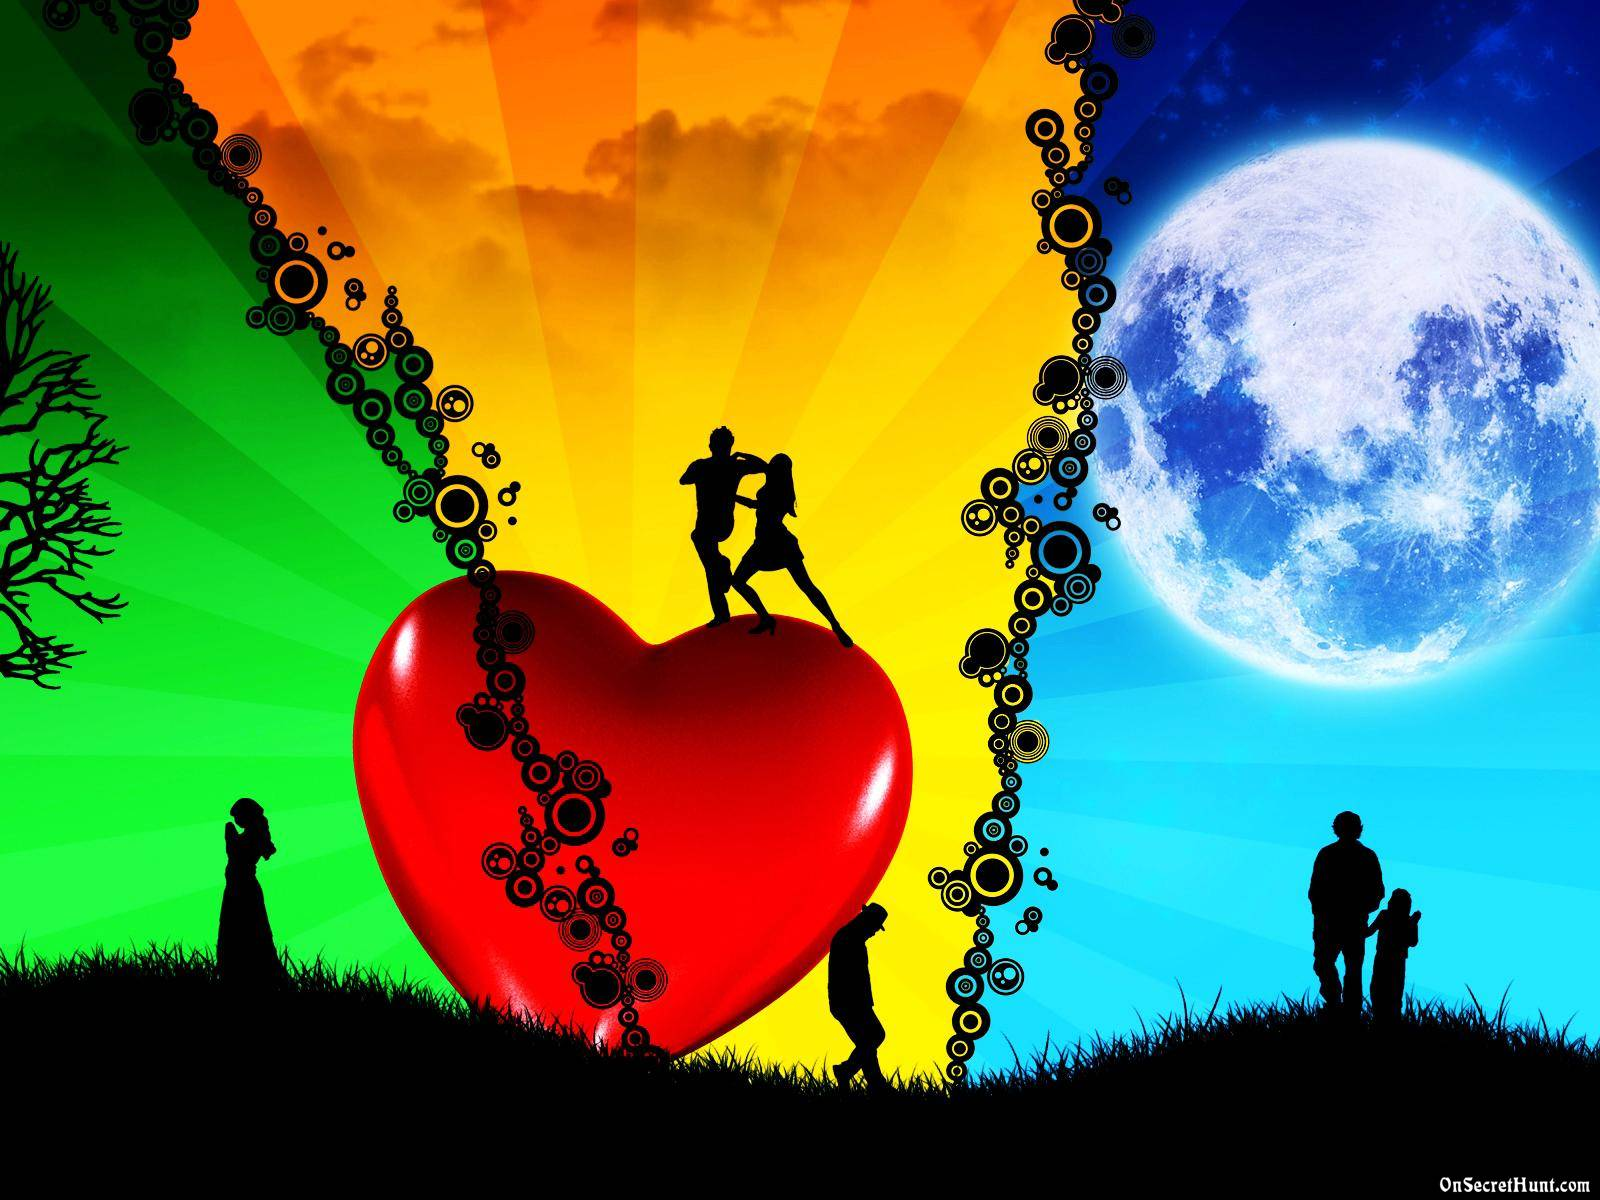 Love Heart couple Hd Wallpaper : Love Wallpapers 3D - Wallpaper cave